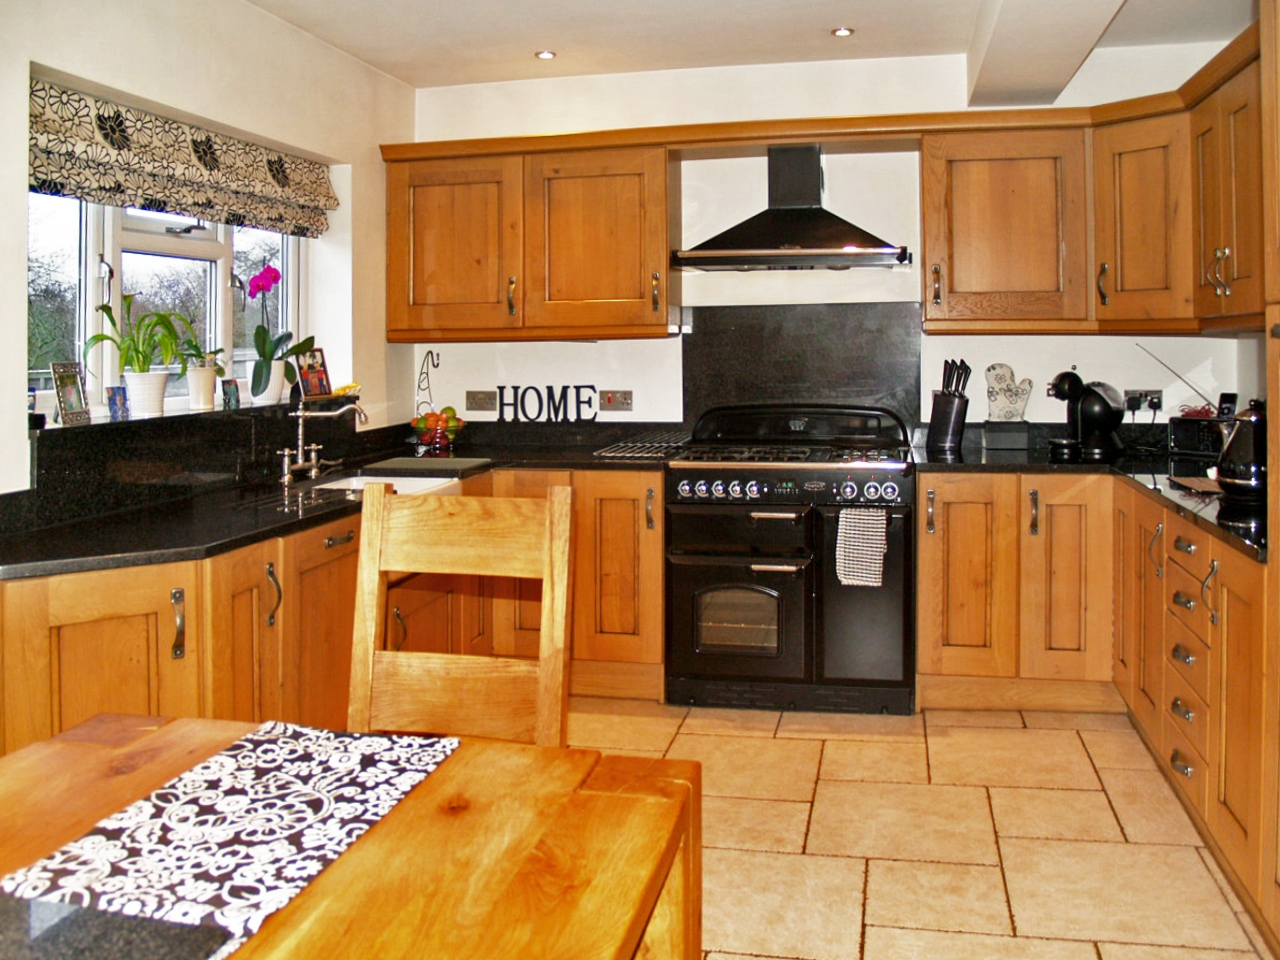 5 bedroom semi detached house SSTC in Solihull - photograph 6.